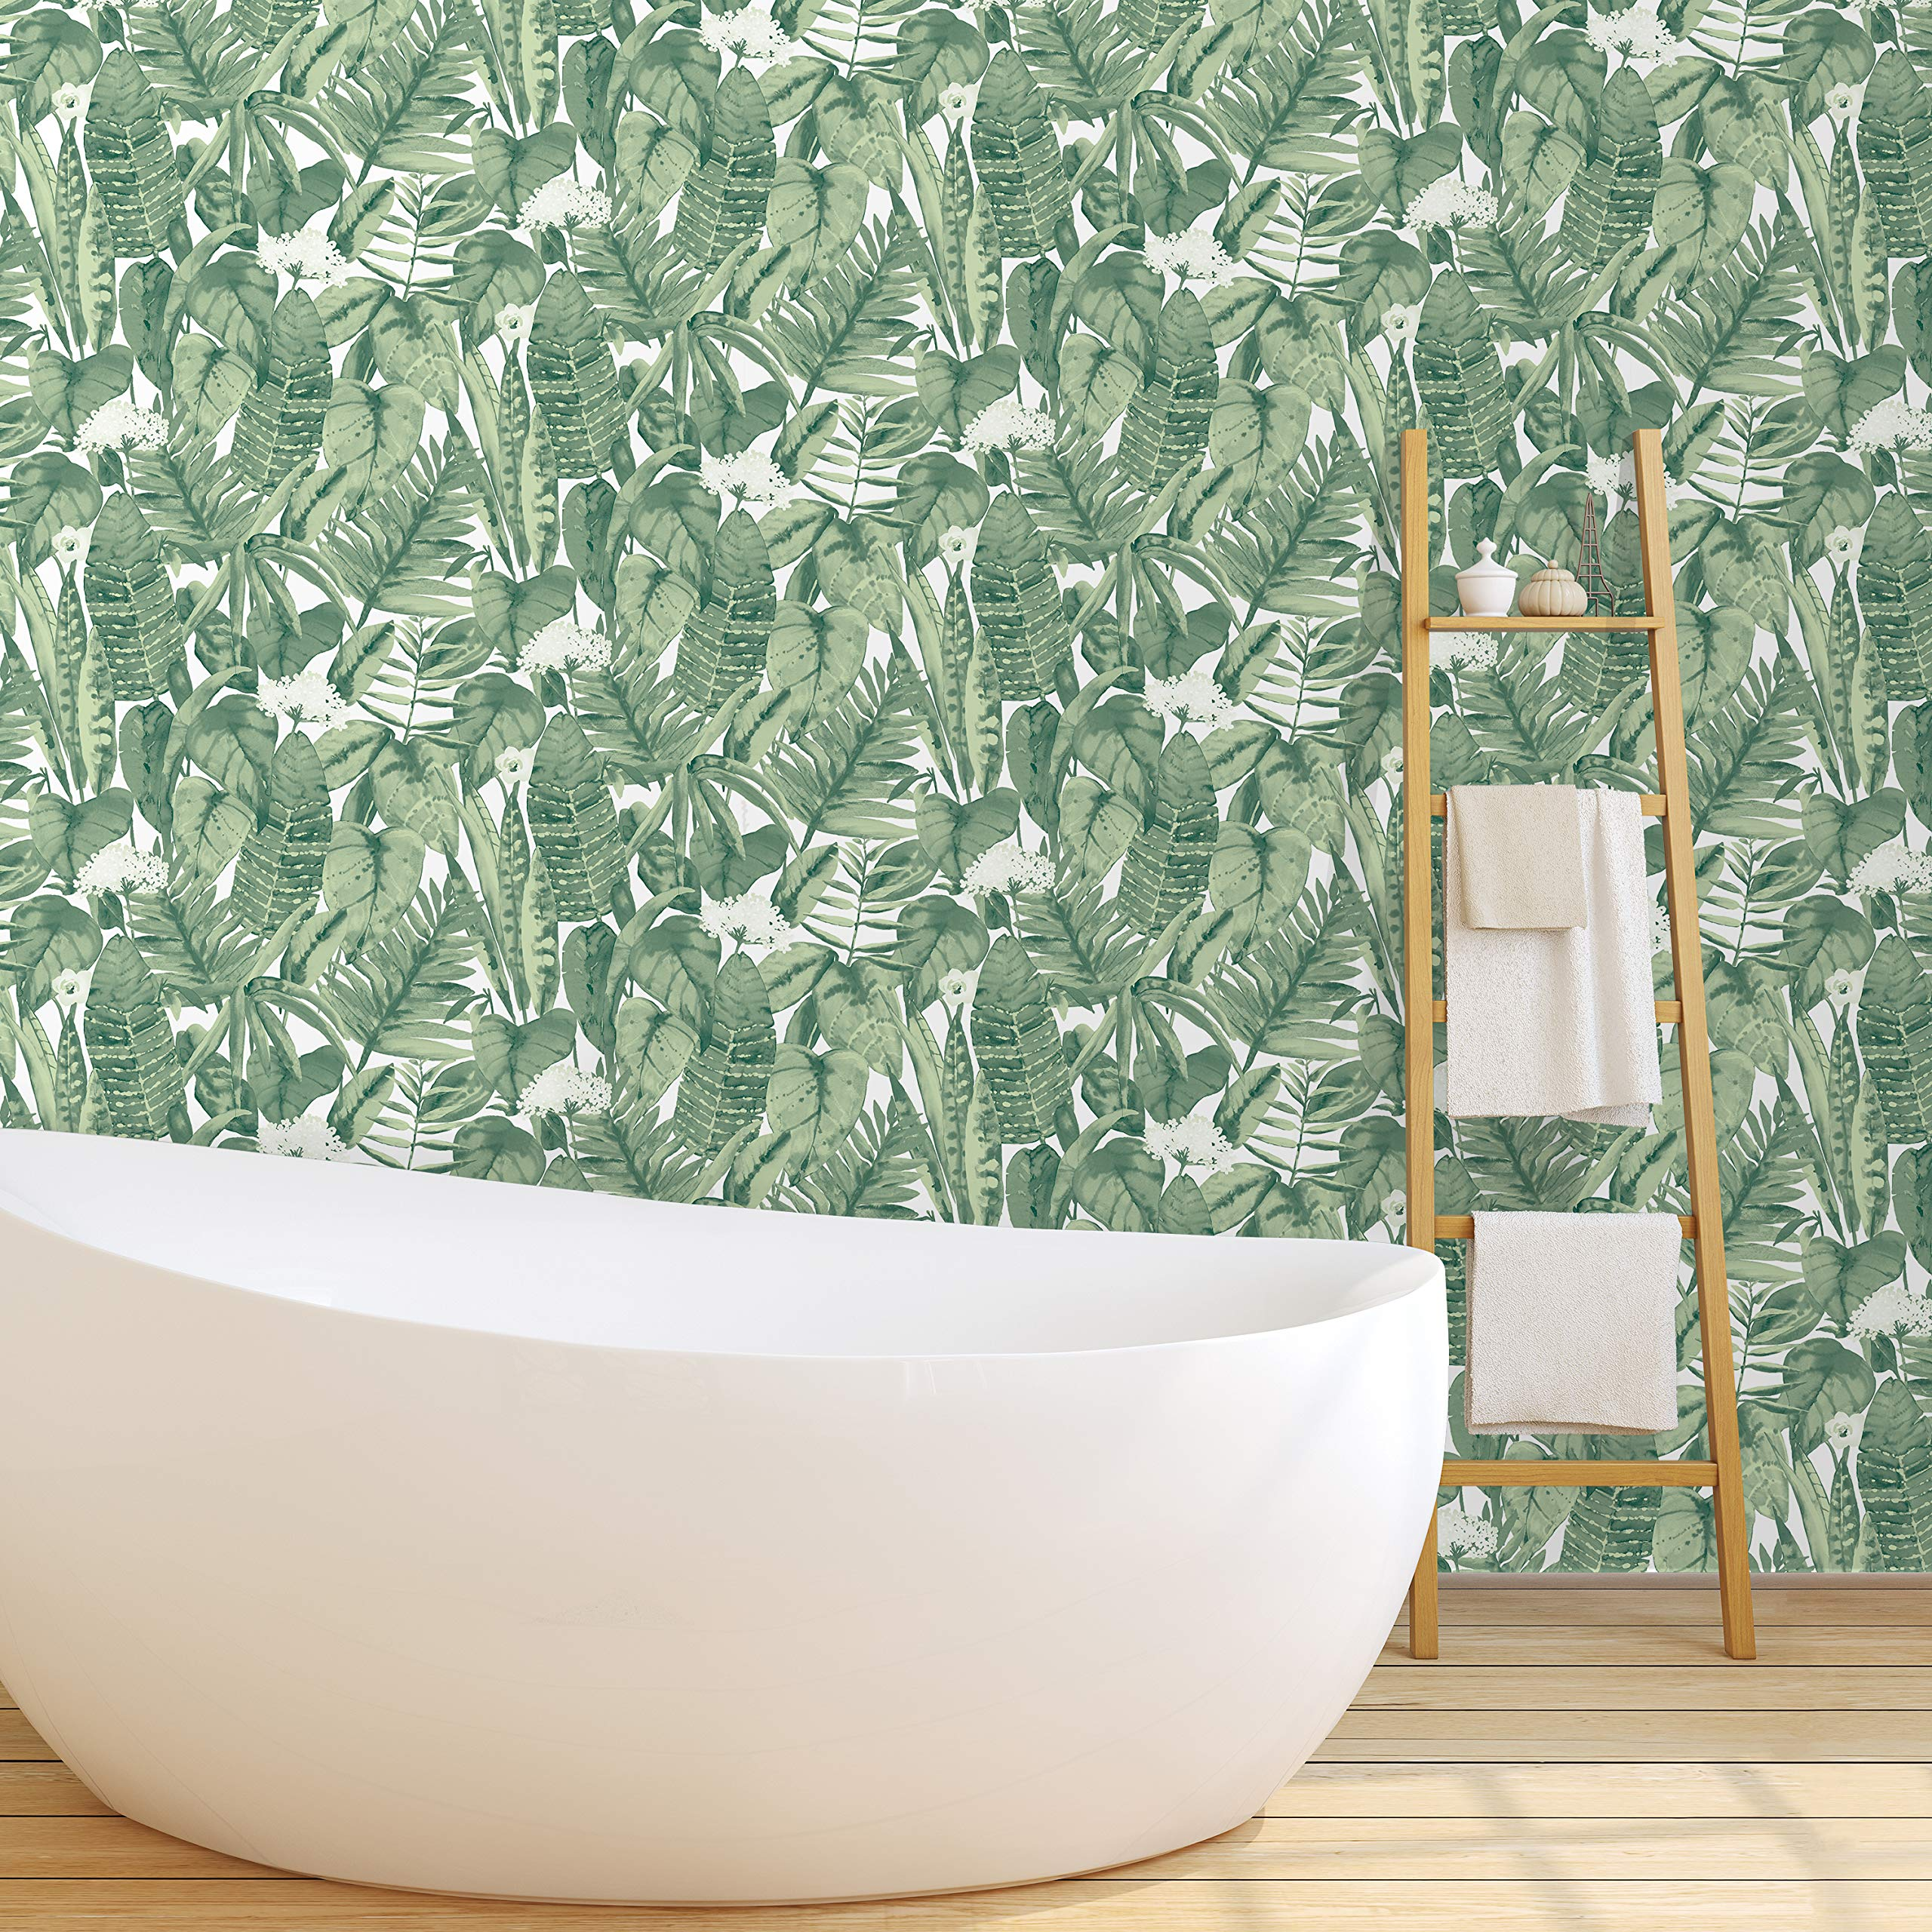 Jungle Green Tropical | Designer Removable Peel and Stick Wallpape